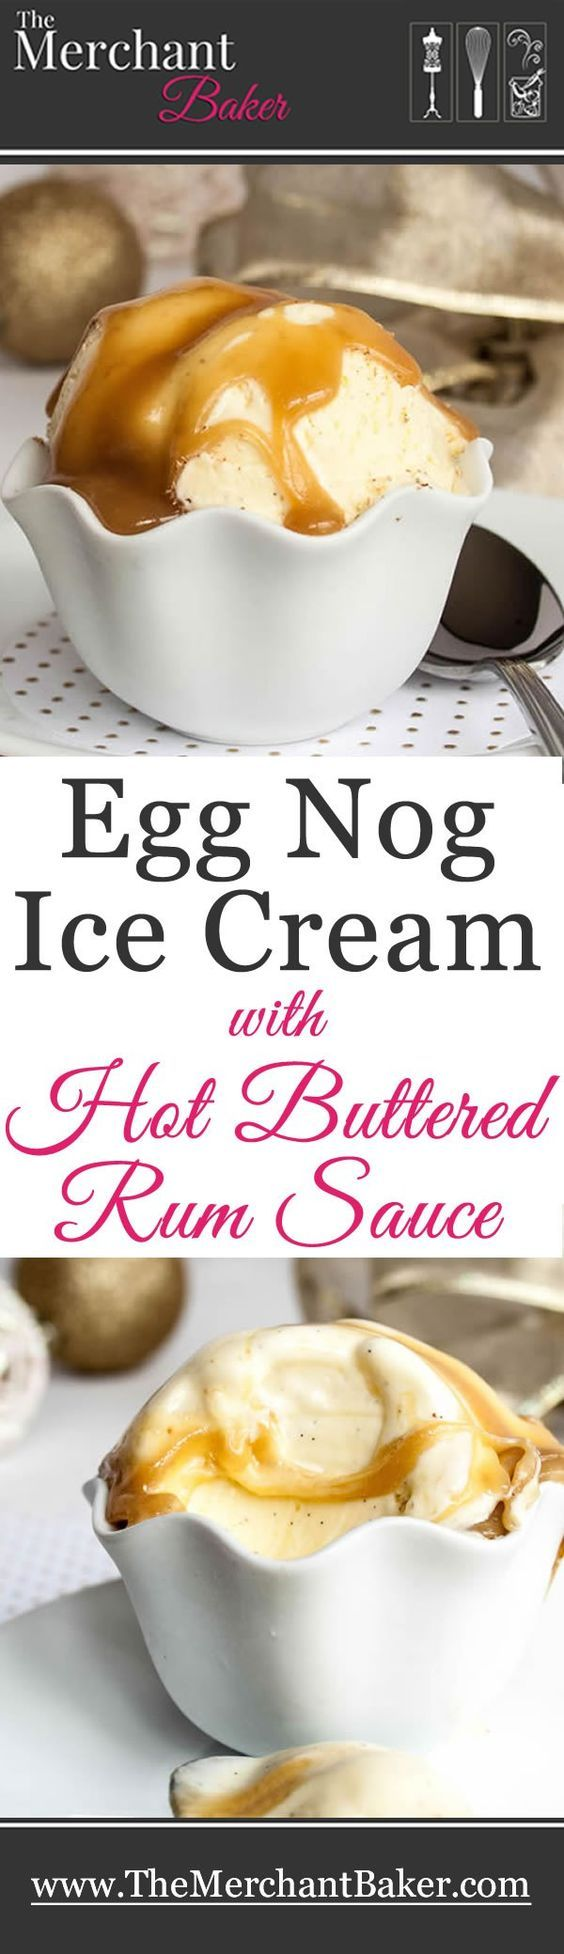 Egg Nog Ice Cream with Hot Buttered Rum Sauce. Super creamy, rich egg nog ice cream crowned with a hot, buttery, caramel rum sauce.